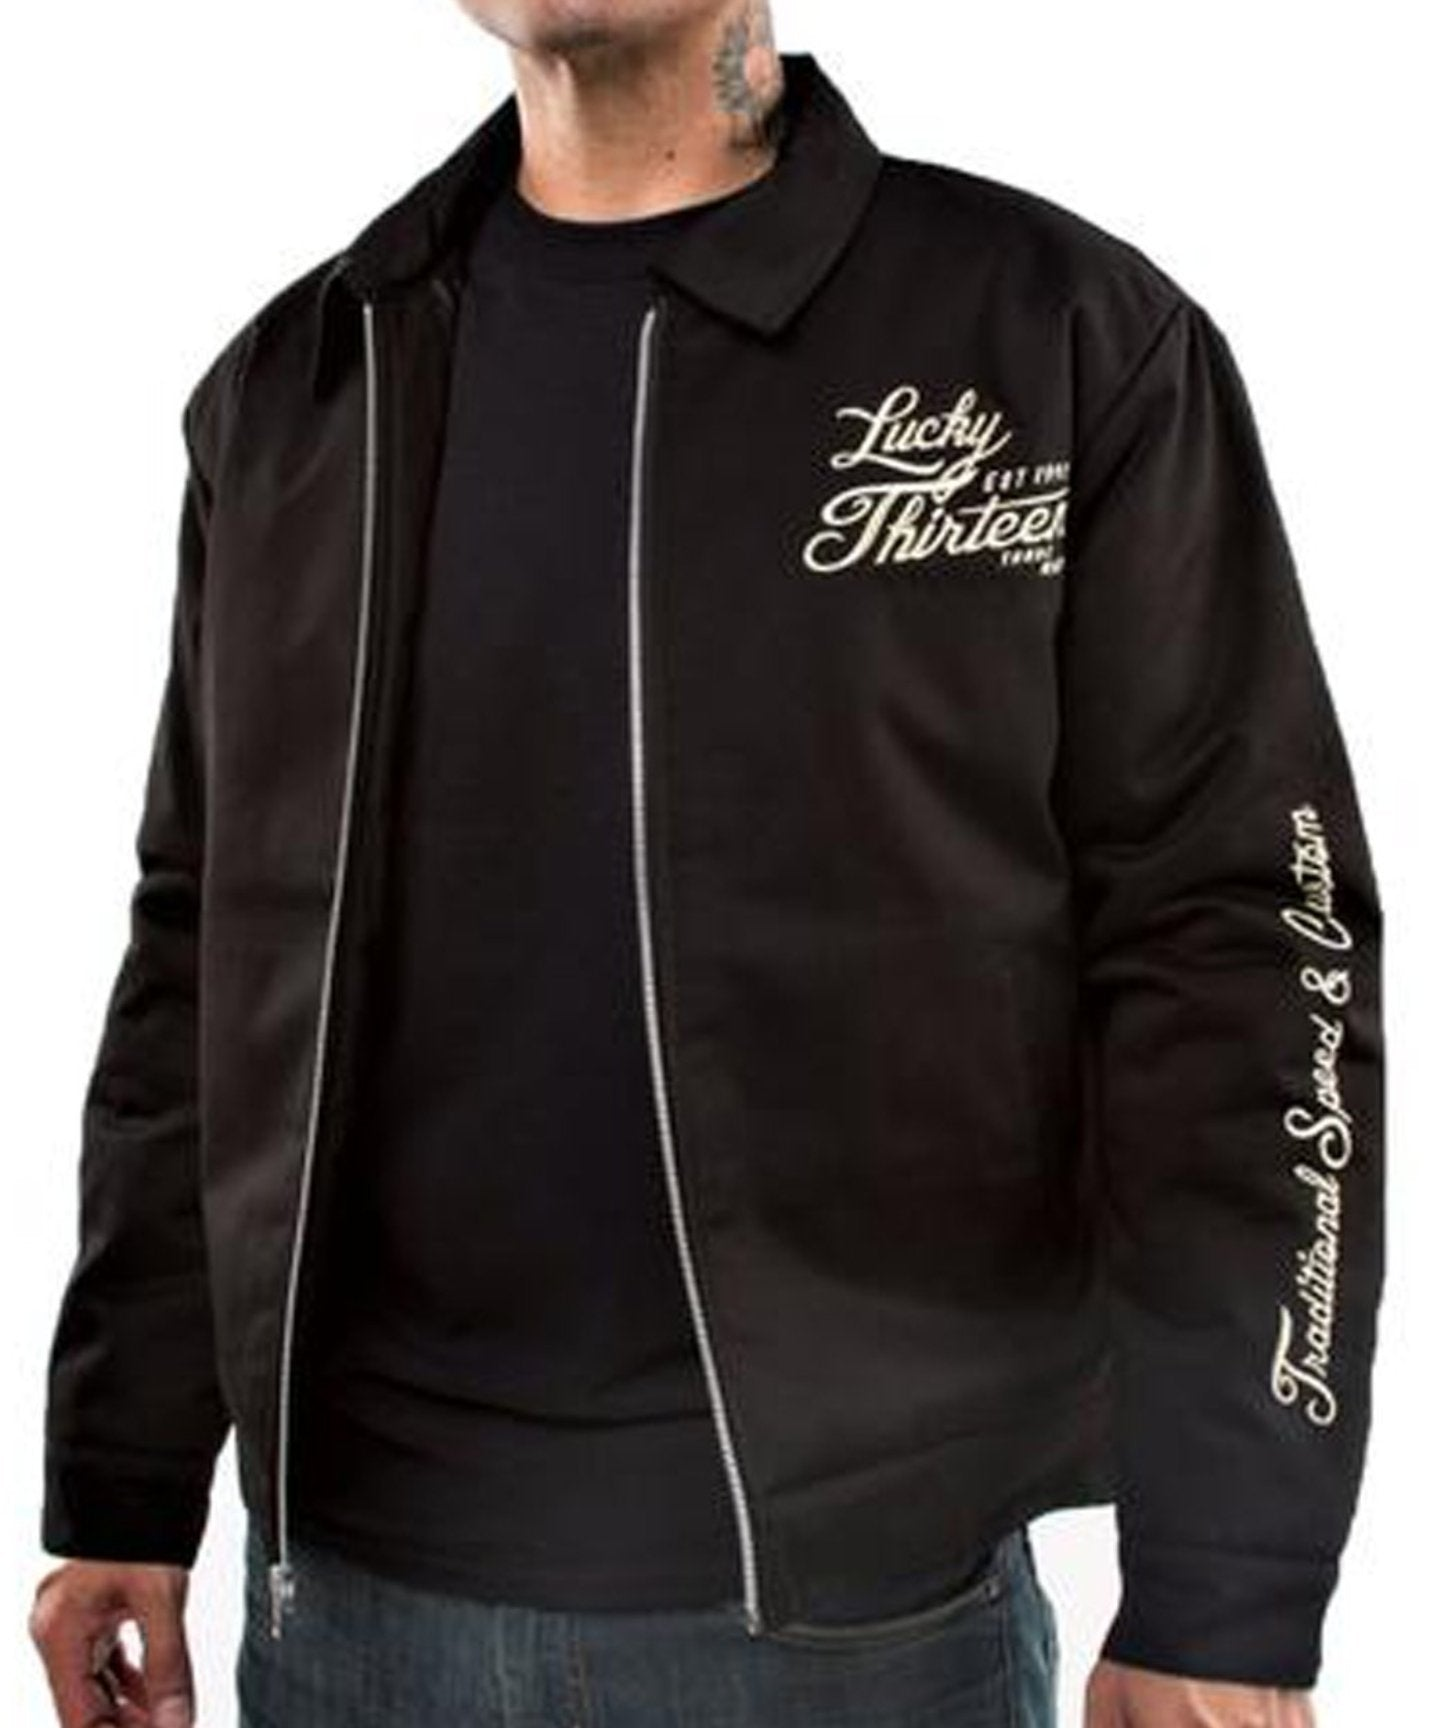 The ACE OF SPADES Jacket